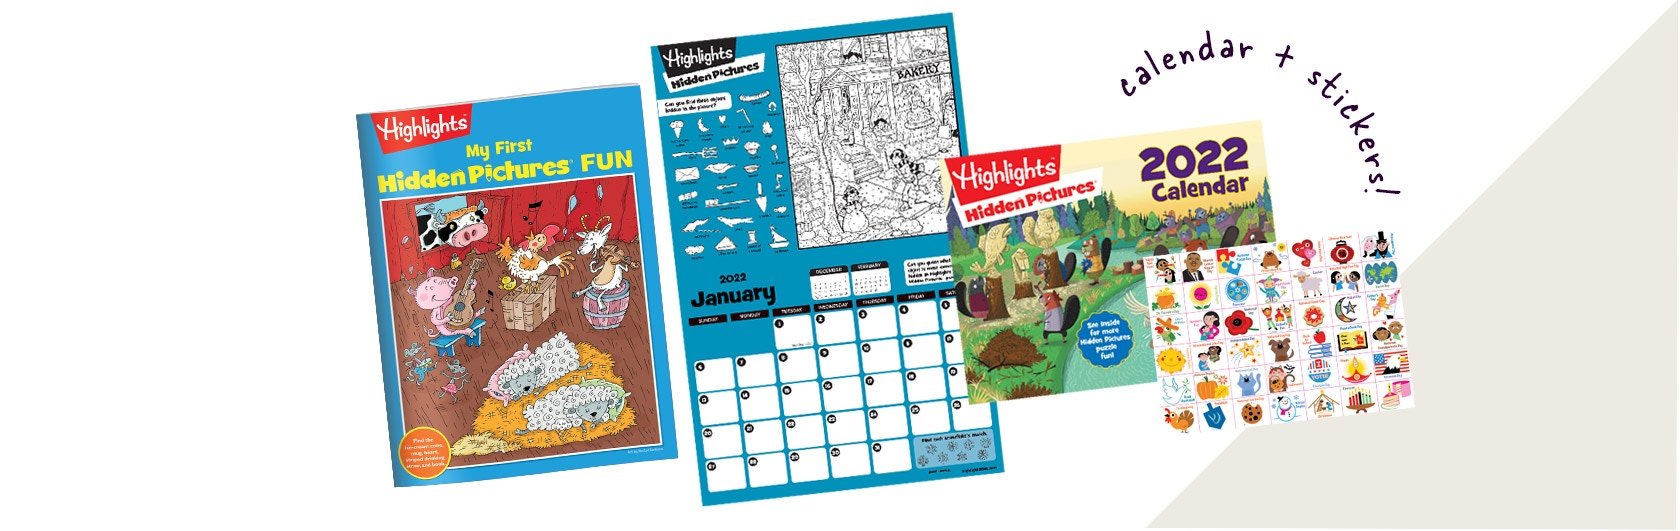 2022 Hidden Pictures calendar with stickers and My First Hidden Pictures fun booklet with beginner puzzles.